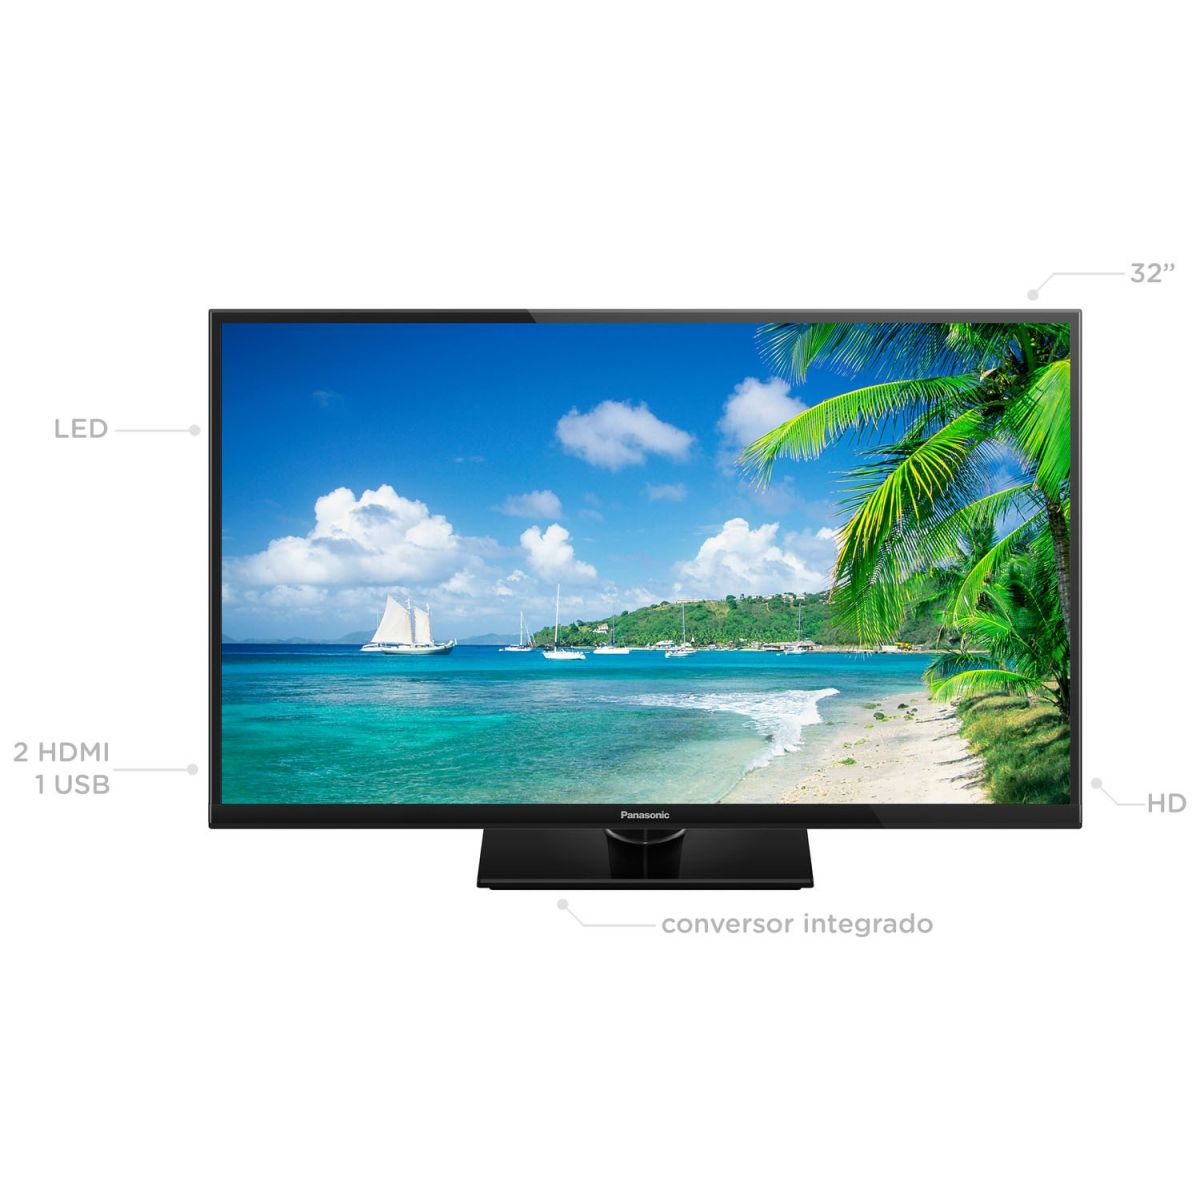 TV 32 LED HD TC-32A400B 2 HDMI, 1 USB, Media Player, Backlight Blinking, Painel IPS - Panasonic